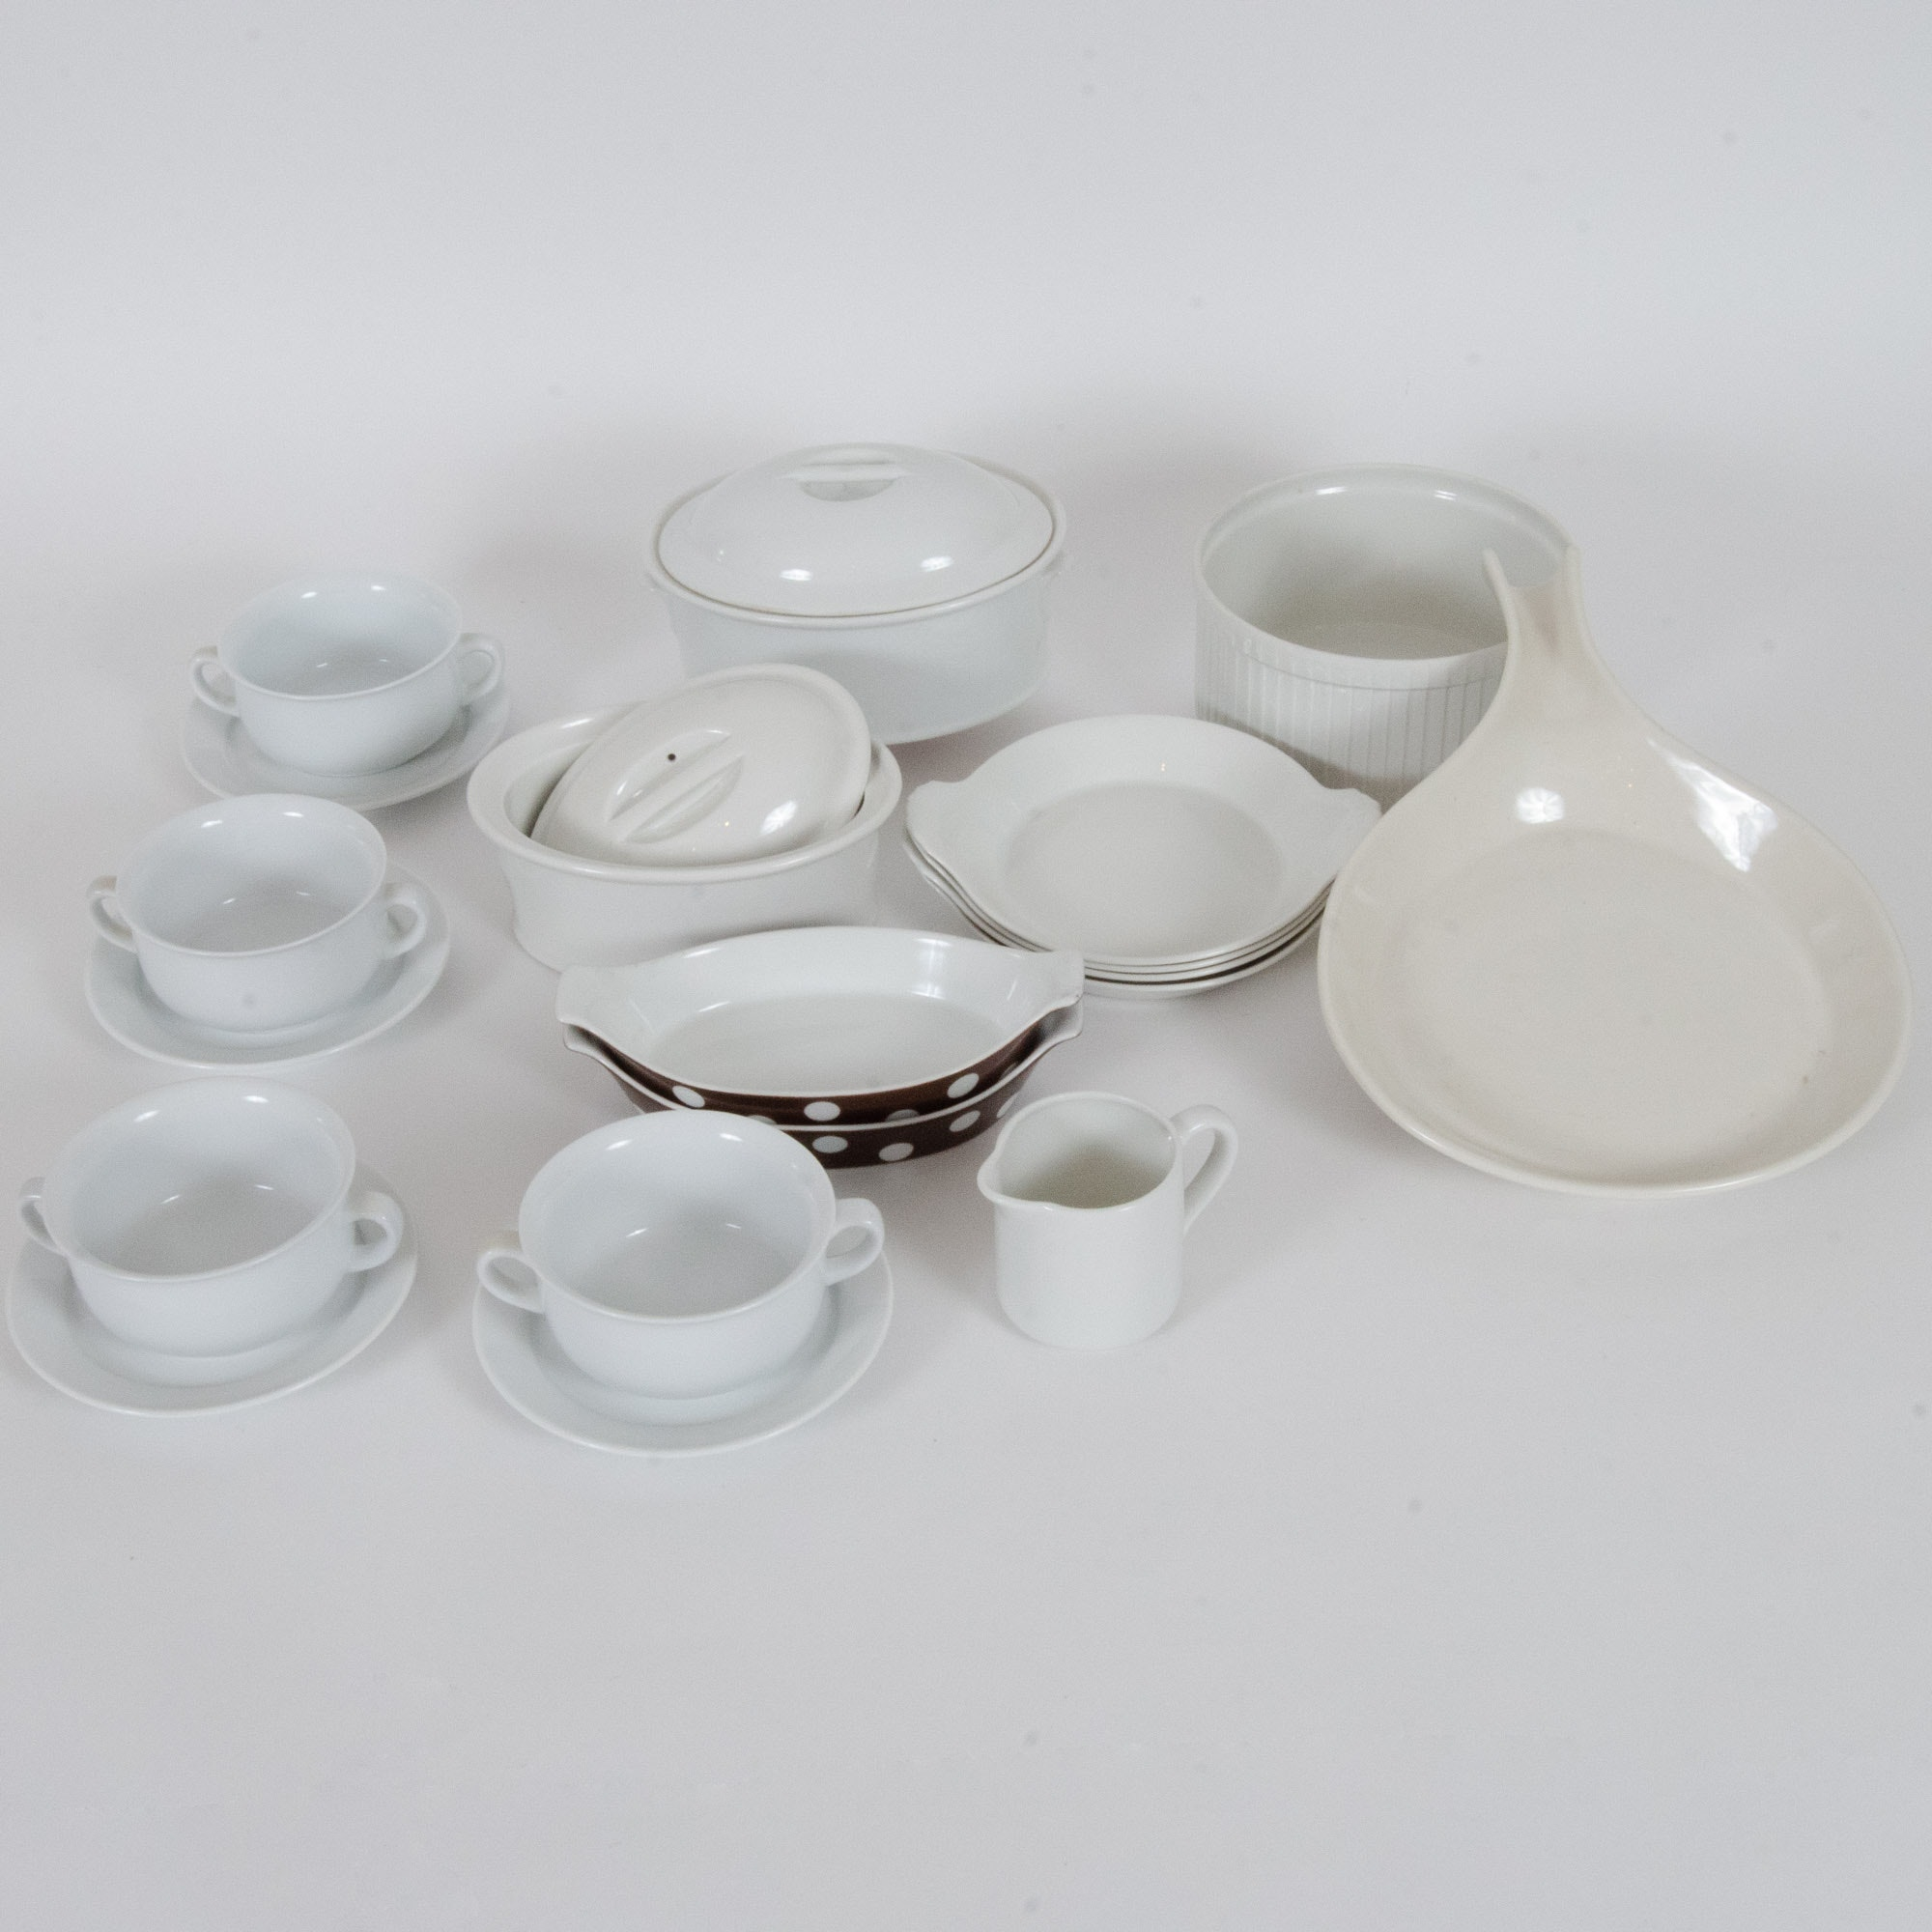 Selection of White Porcelain Tableware, Made in France